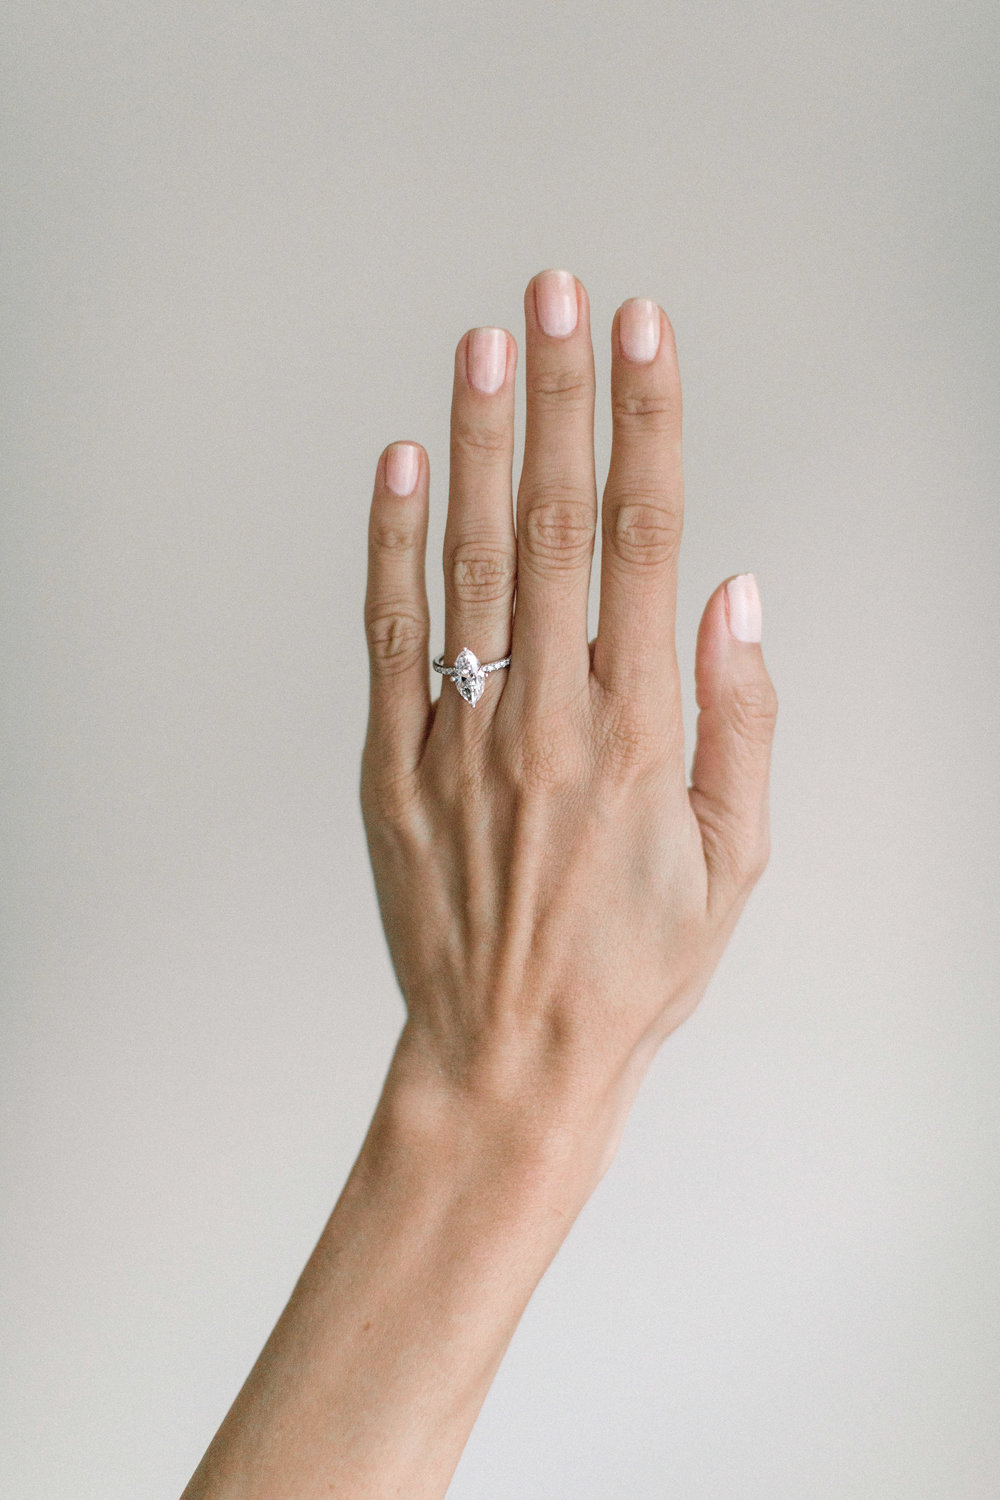 Click for more on kayla's engagement ring